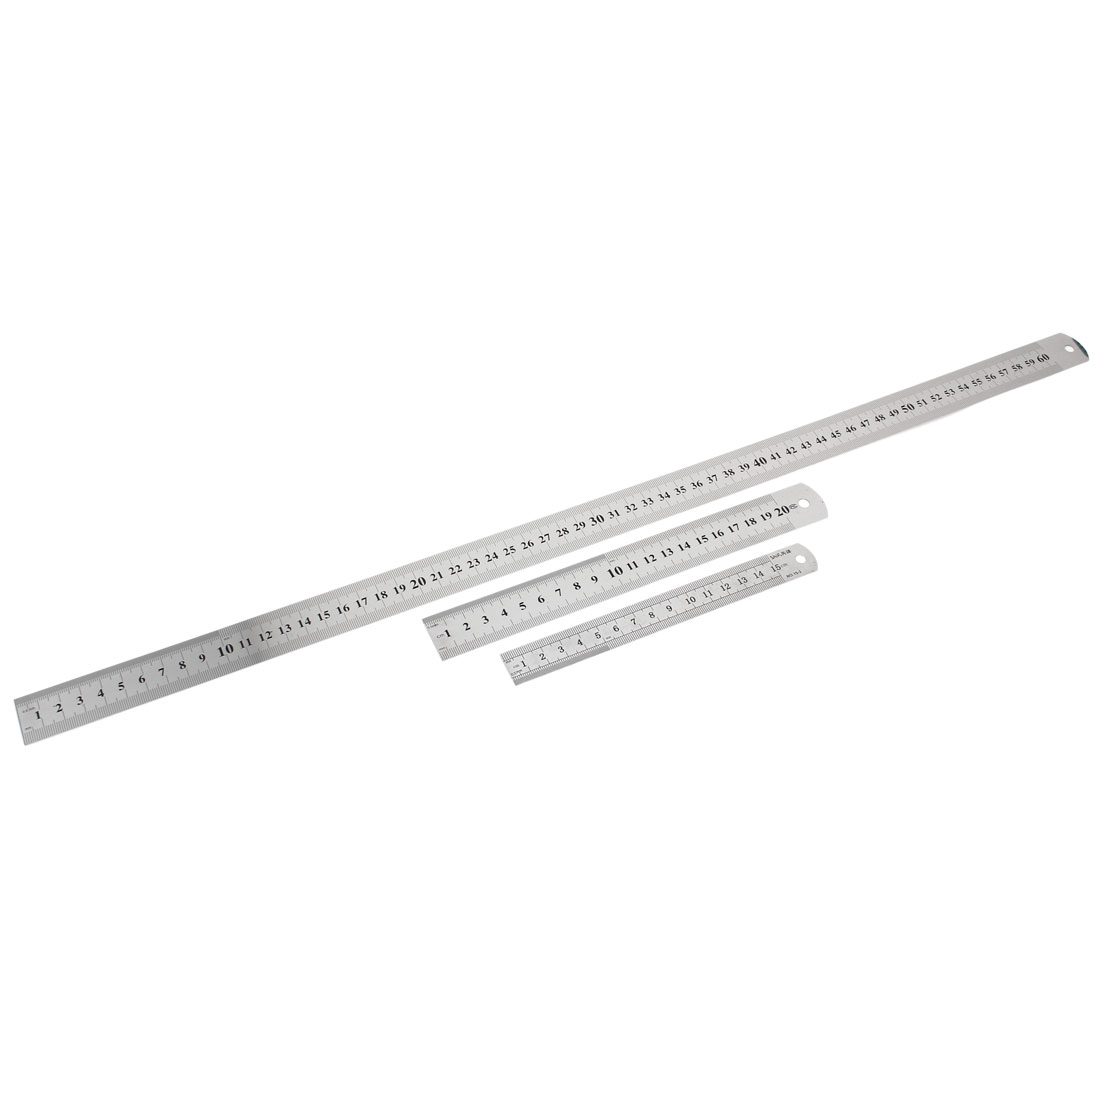 3 in 1 15cm 20cm 60cm Double Sides Students Metric Straight Ruler Silver Tone